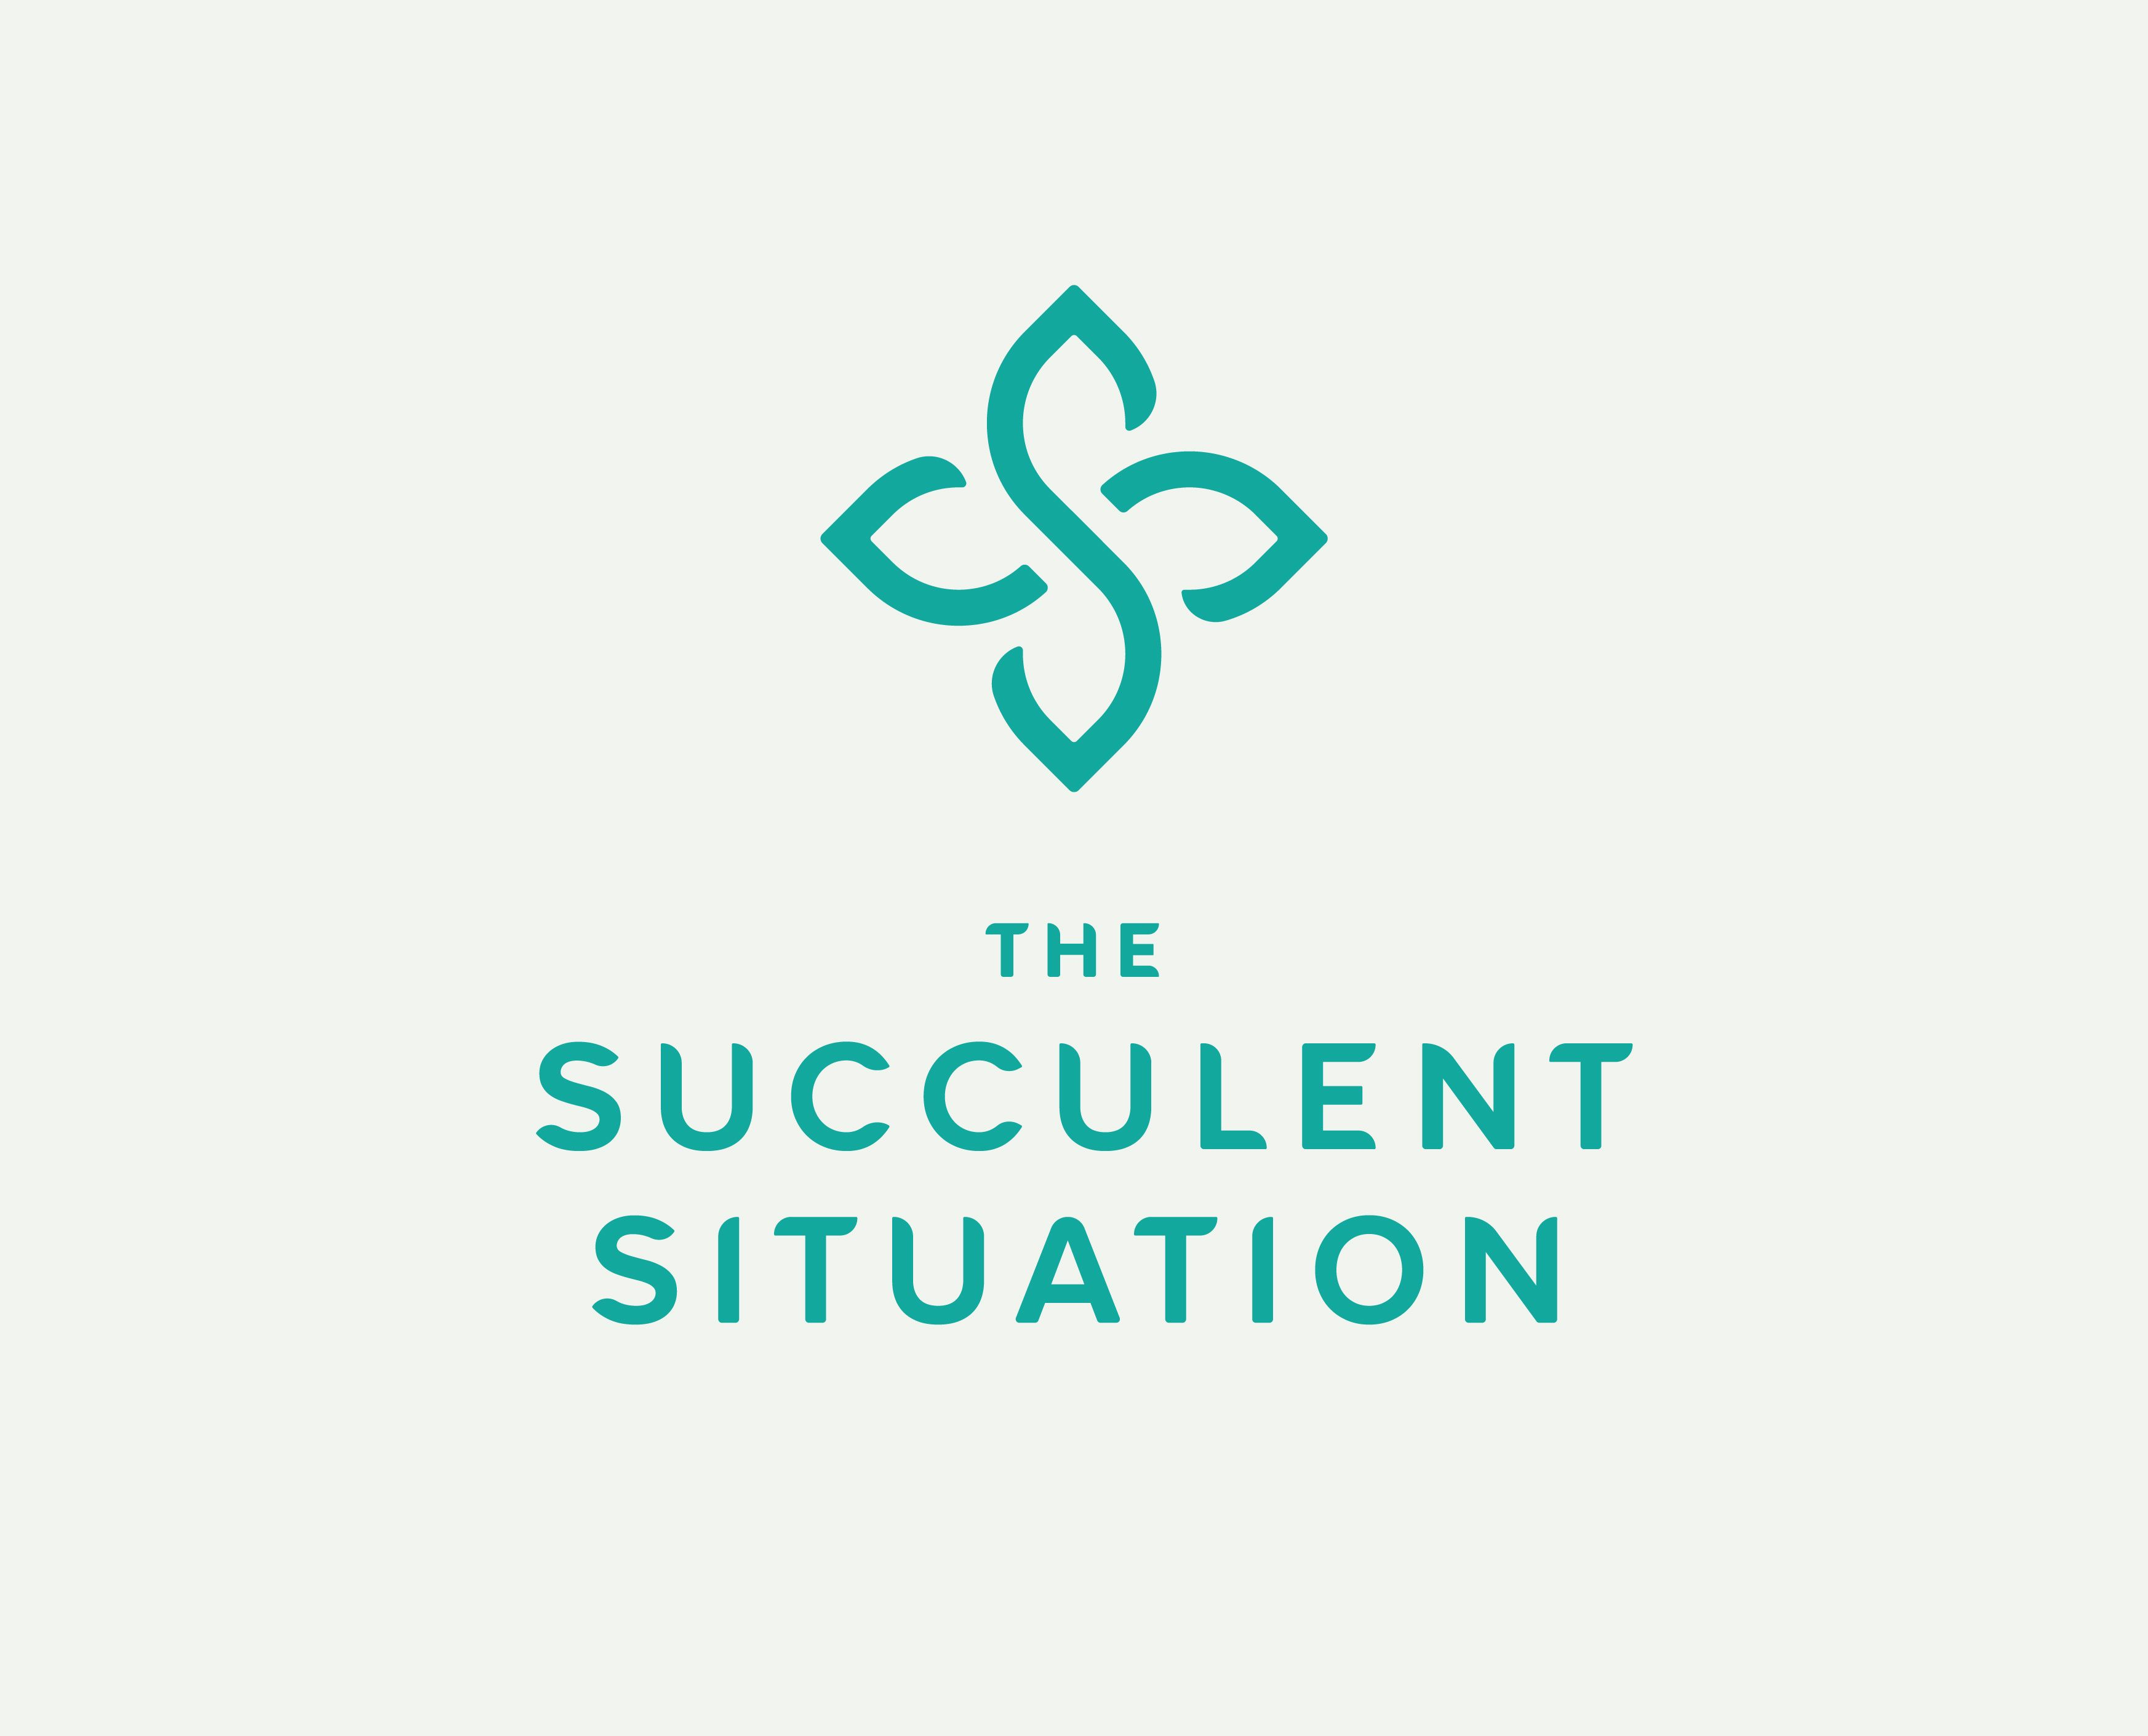 Succulent Logo - The Succulent Situation Logo by DKNG on Dribbble